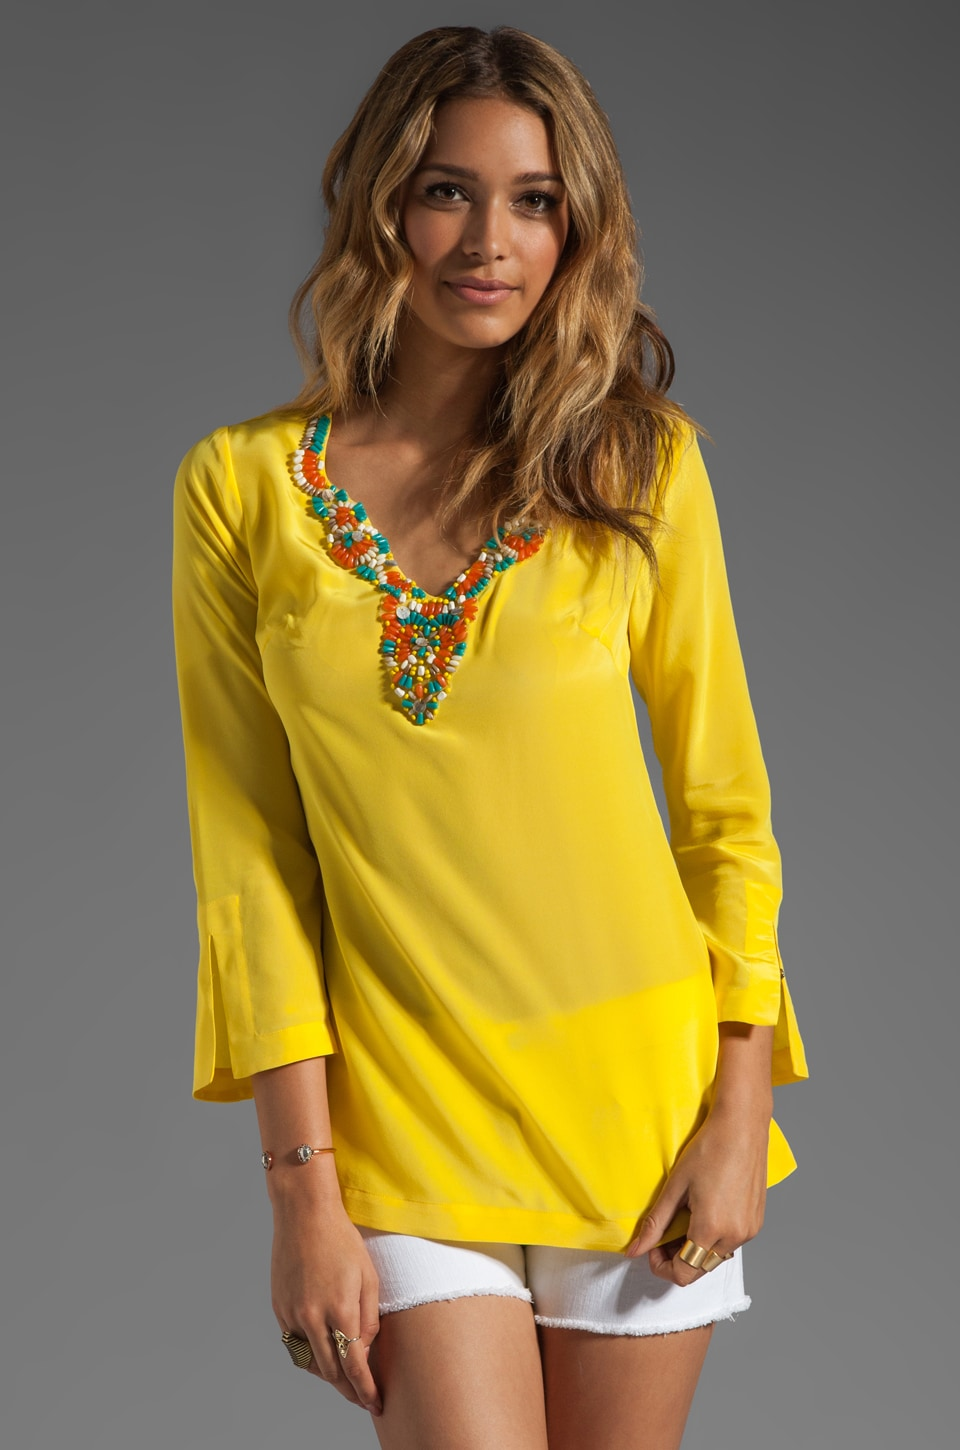 Trina Turk Sunfish Blouse in Sun